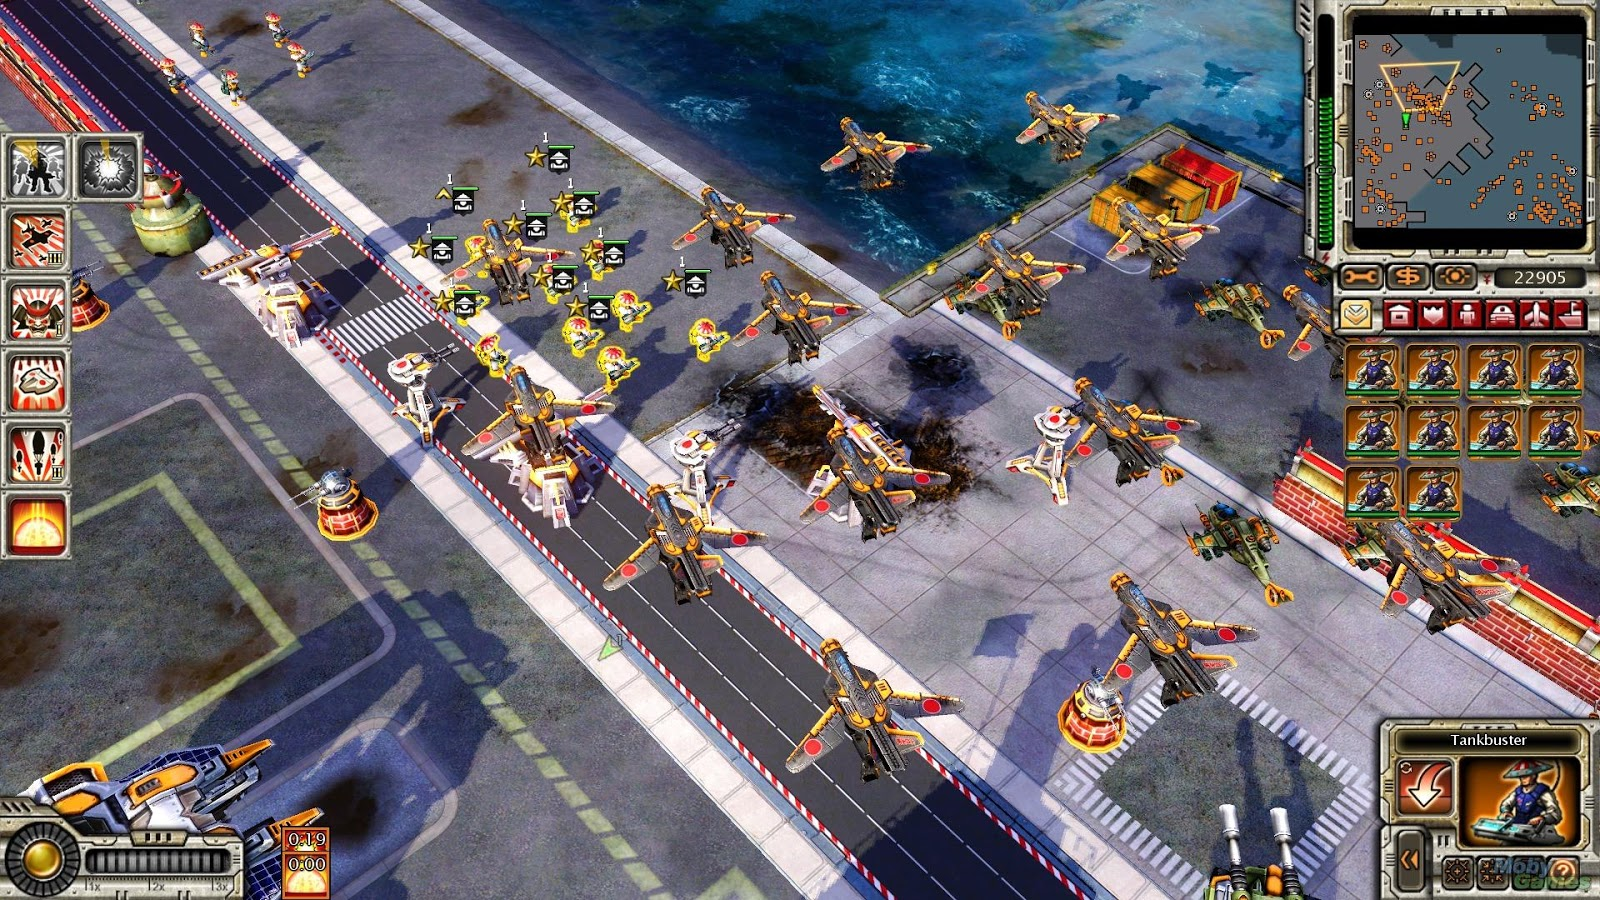 Red Alert 3 Free Download Full Version for PC - My PC Games